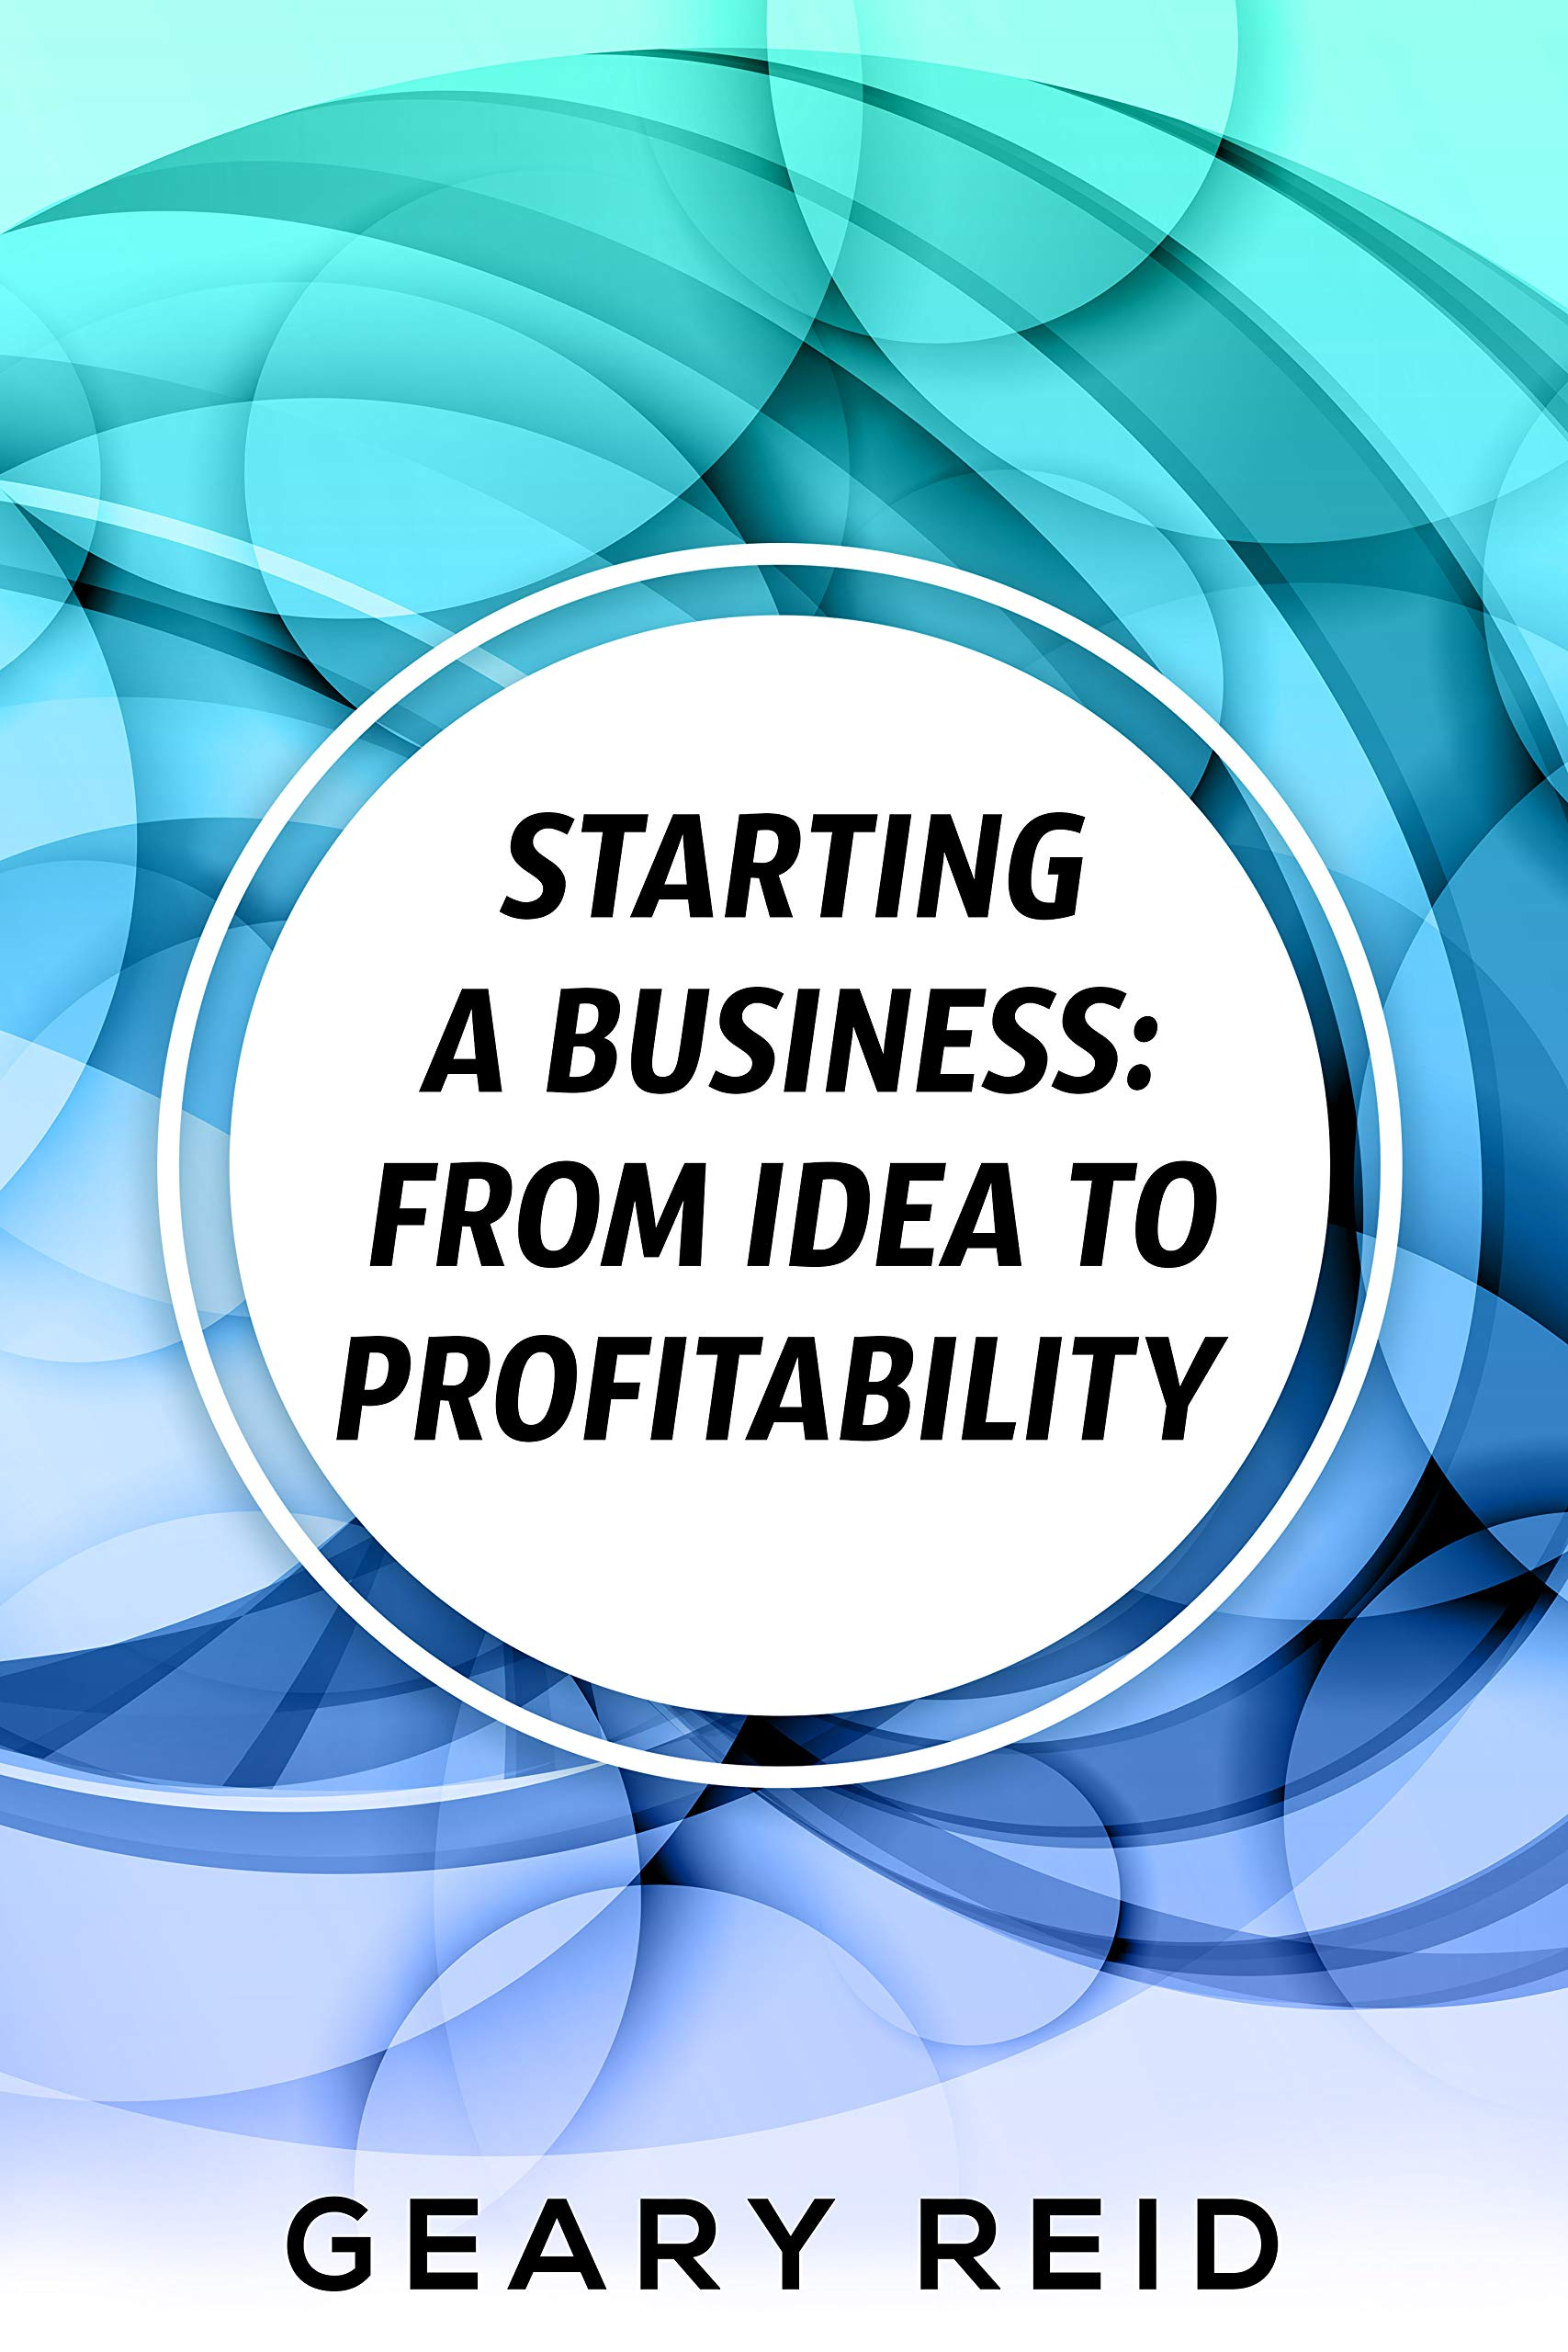 Starting a Business: From Idea to Profitability: Geary Reid offers a helpful guide to getting a business off the ground.